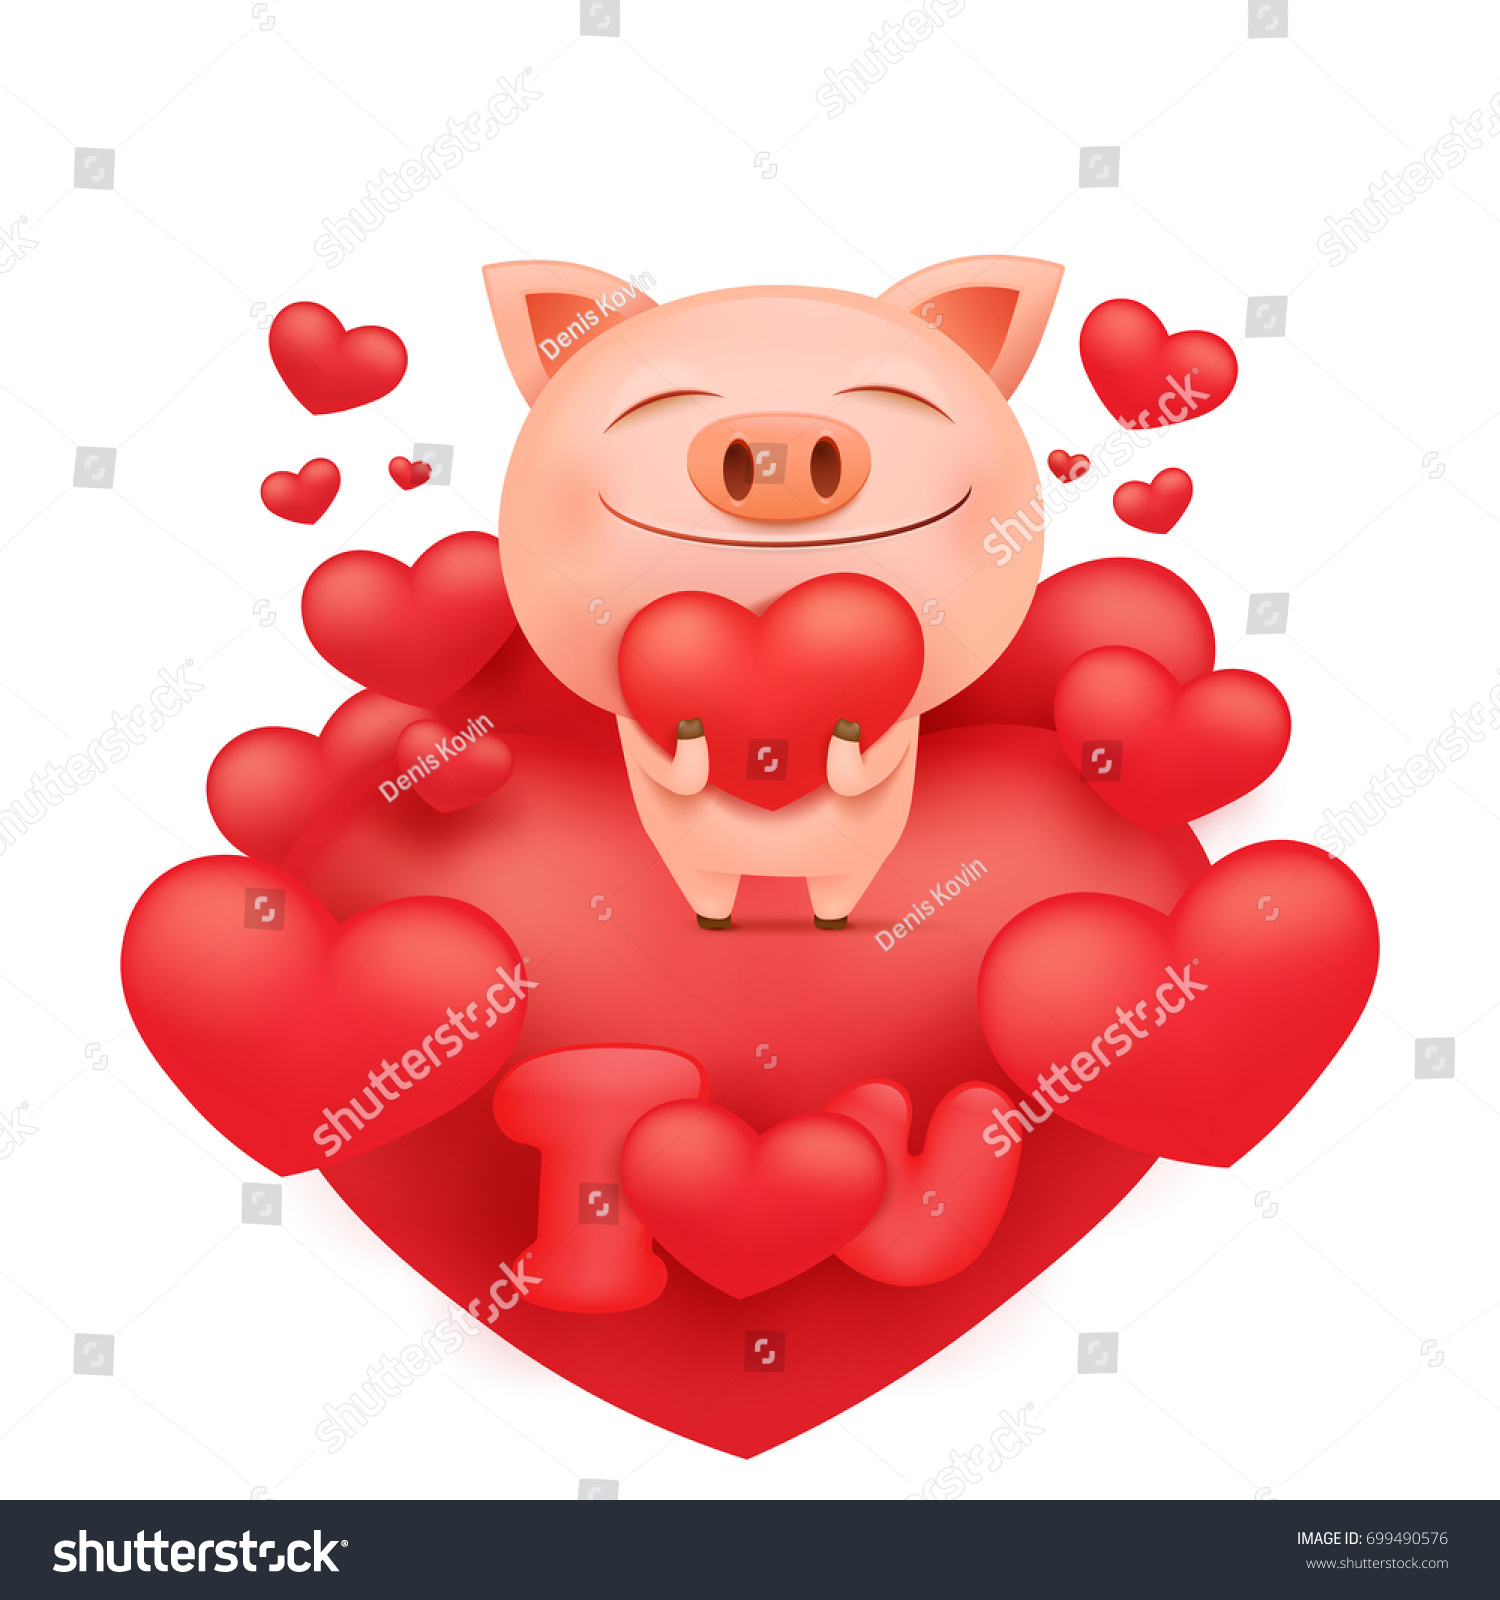 Funny Pink Pig Cartoon Character Standing Stock Vector HD (Royalty ... for Pig Heart Cartoon  lp00lyp